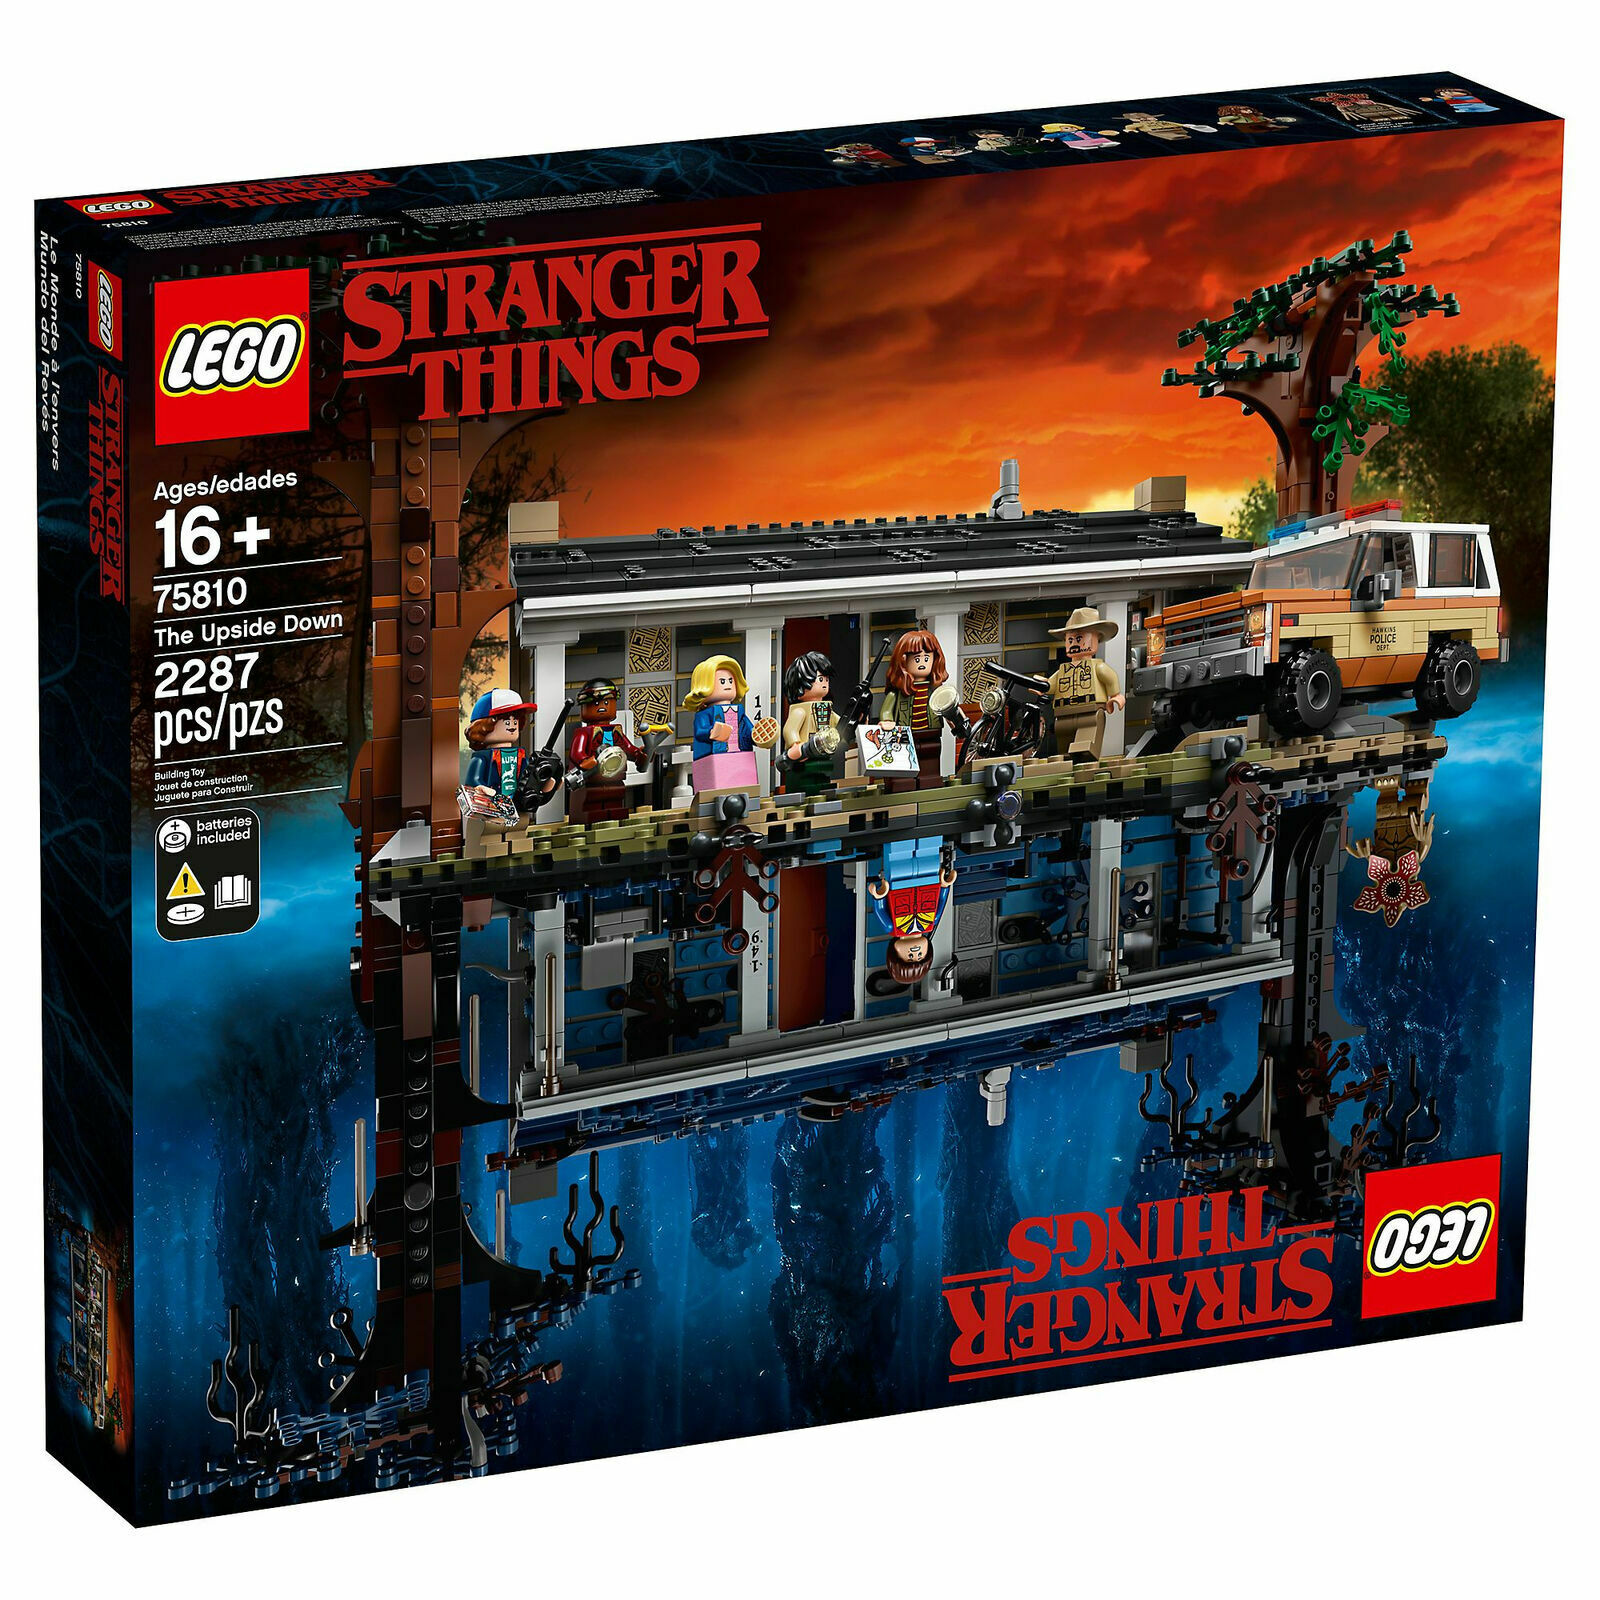 LEGO EXCLUSIVE The Stranger Things  The Upside Down  (75810) SEALED  autorizzazione ufficiale